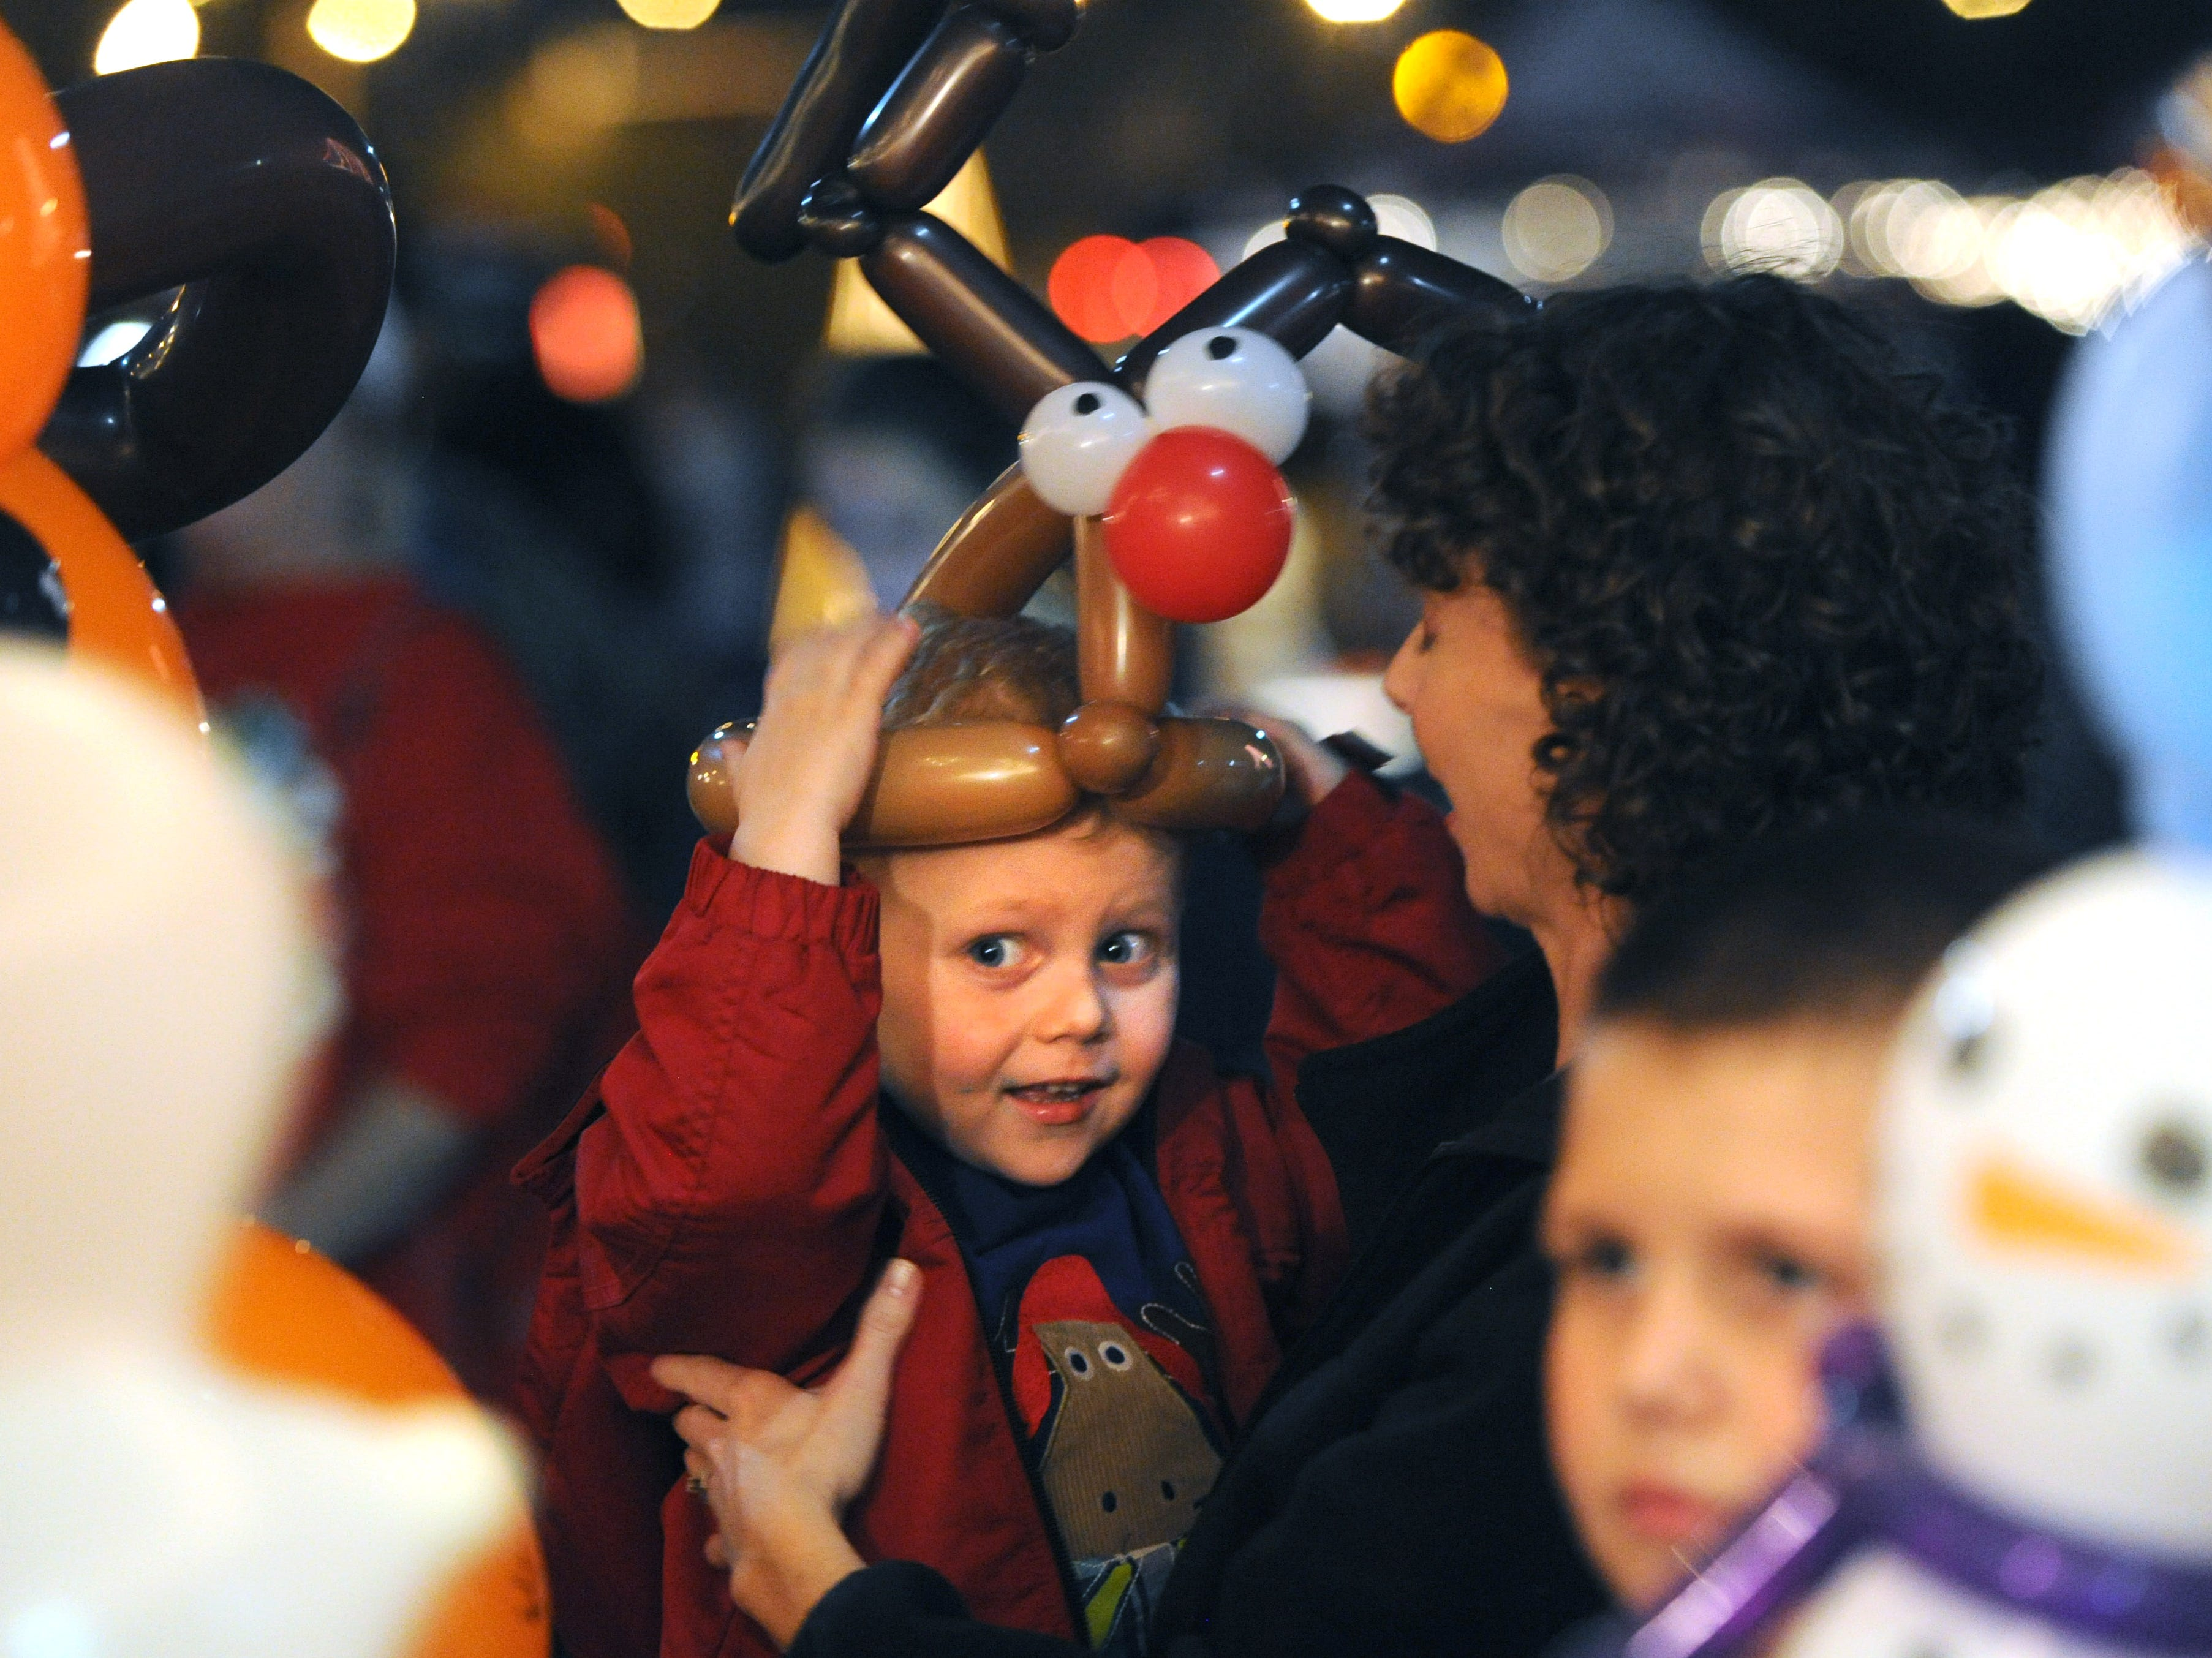 Gavin Peairs, 3, center, dons a reindeer balloon hat as he is held by mother Melinda Peairs during Xfinity Christmas at Chilhowee Park on Friday, Dec. 11, 2015. The event also featured gingerbread house-making, marshmallow roasting, and photos with Santa Claus.